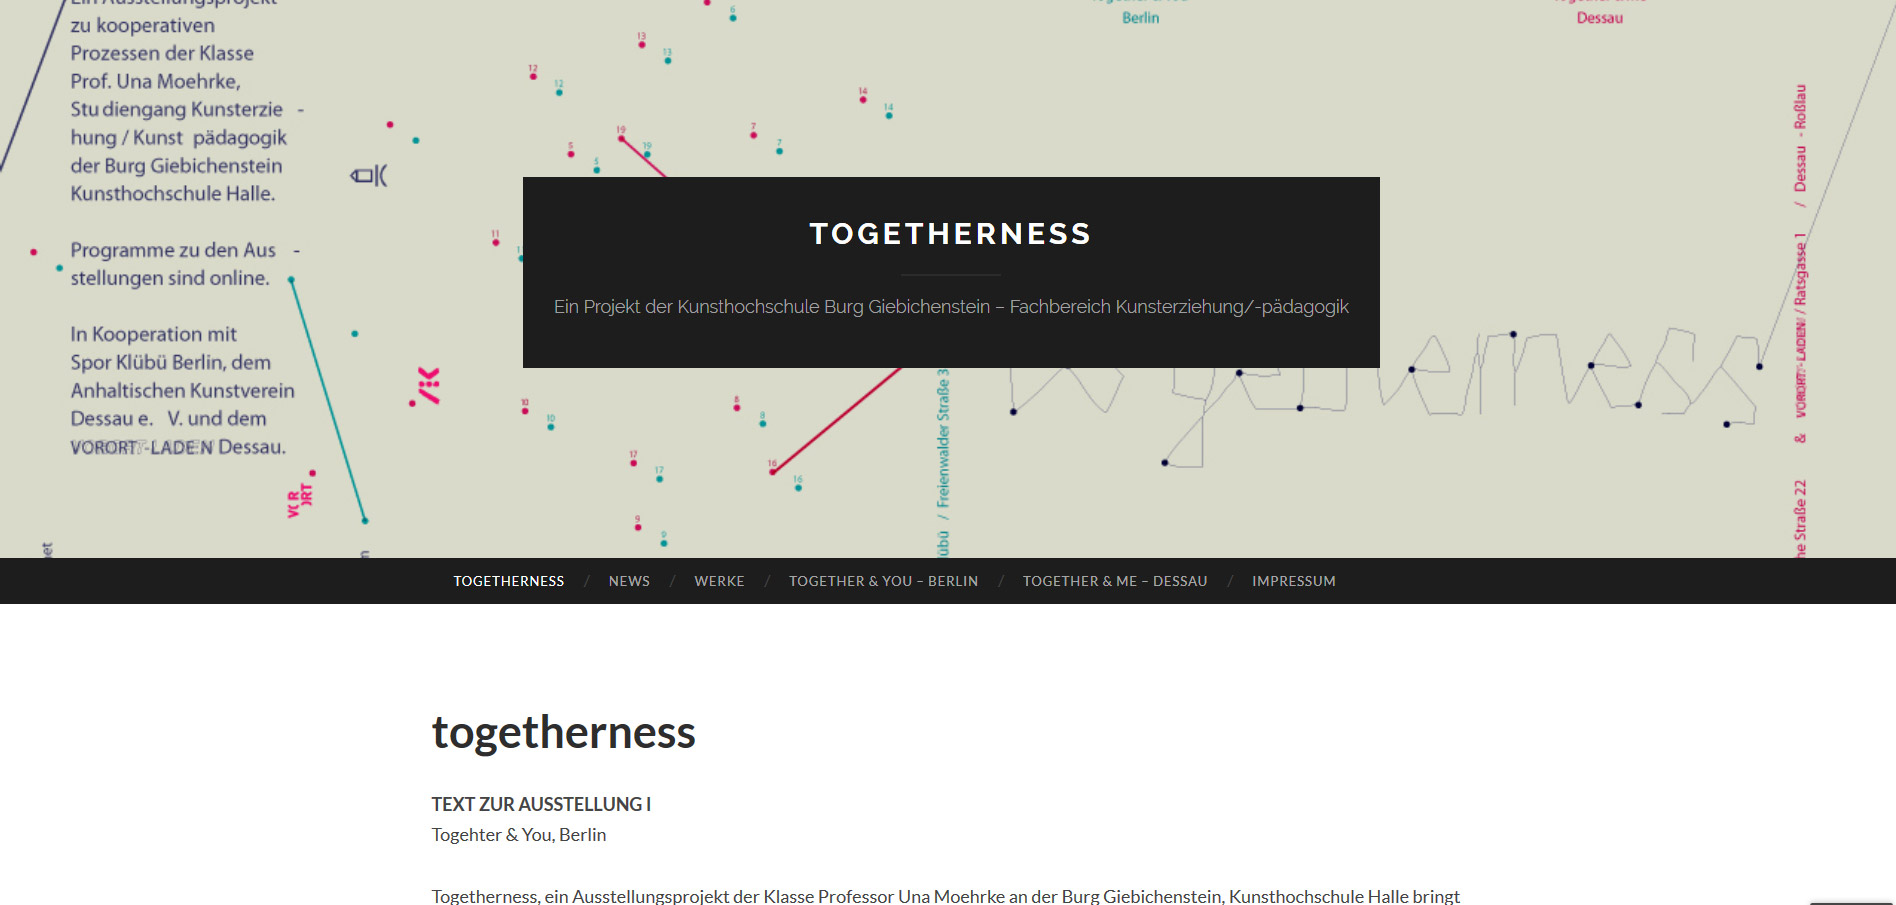 Togetherness Berlin und Dessau